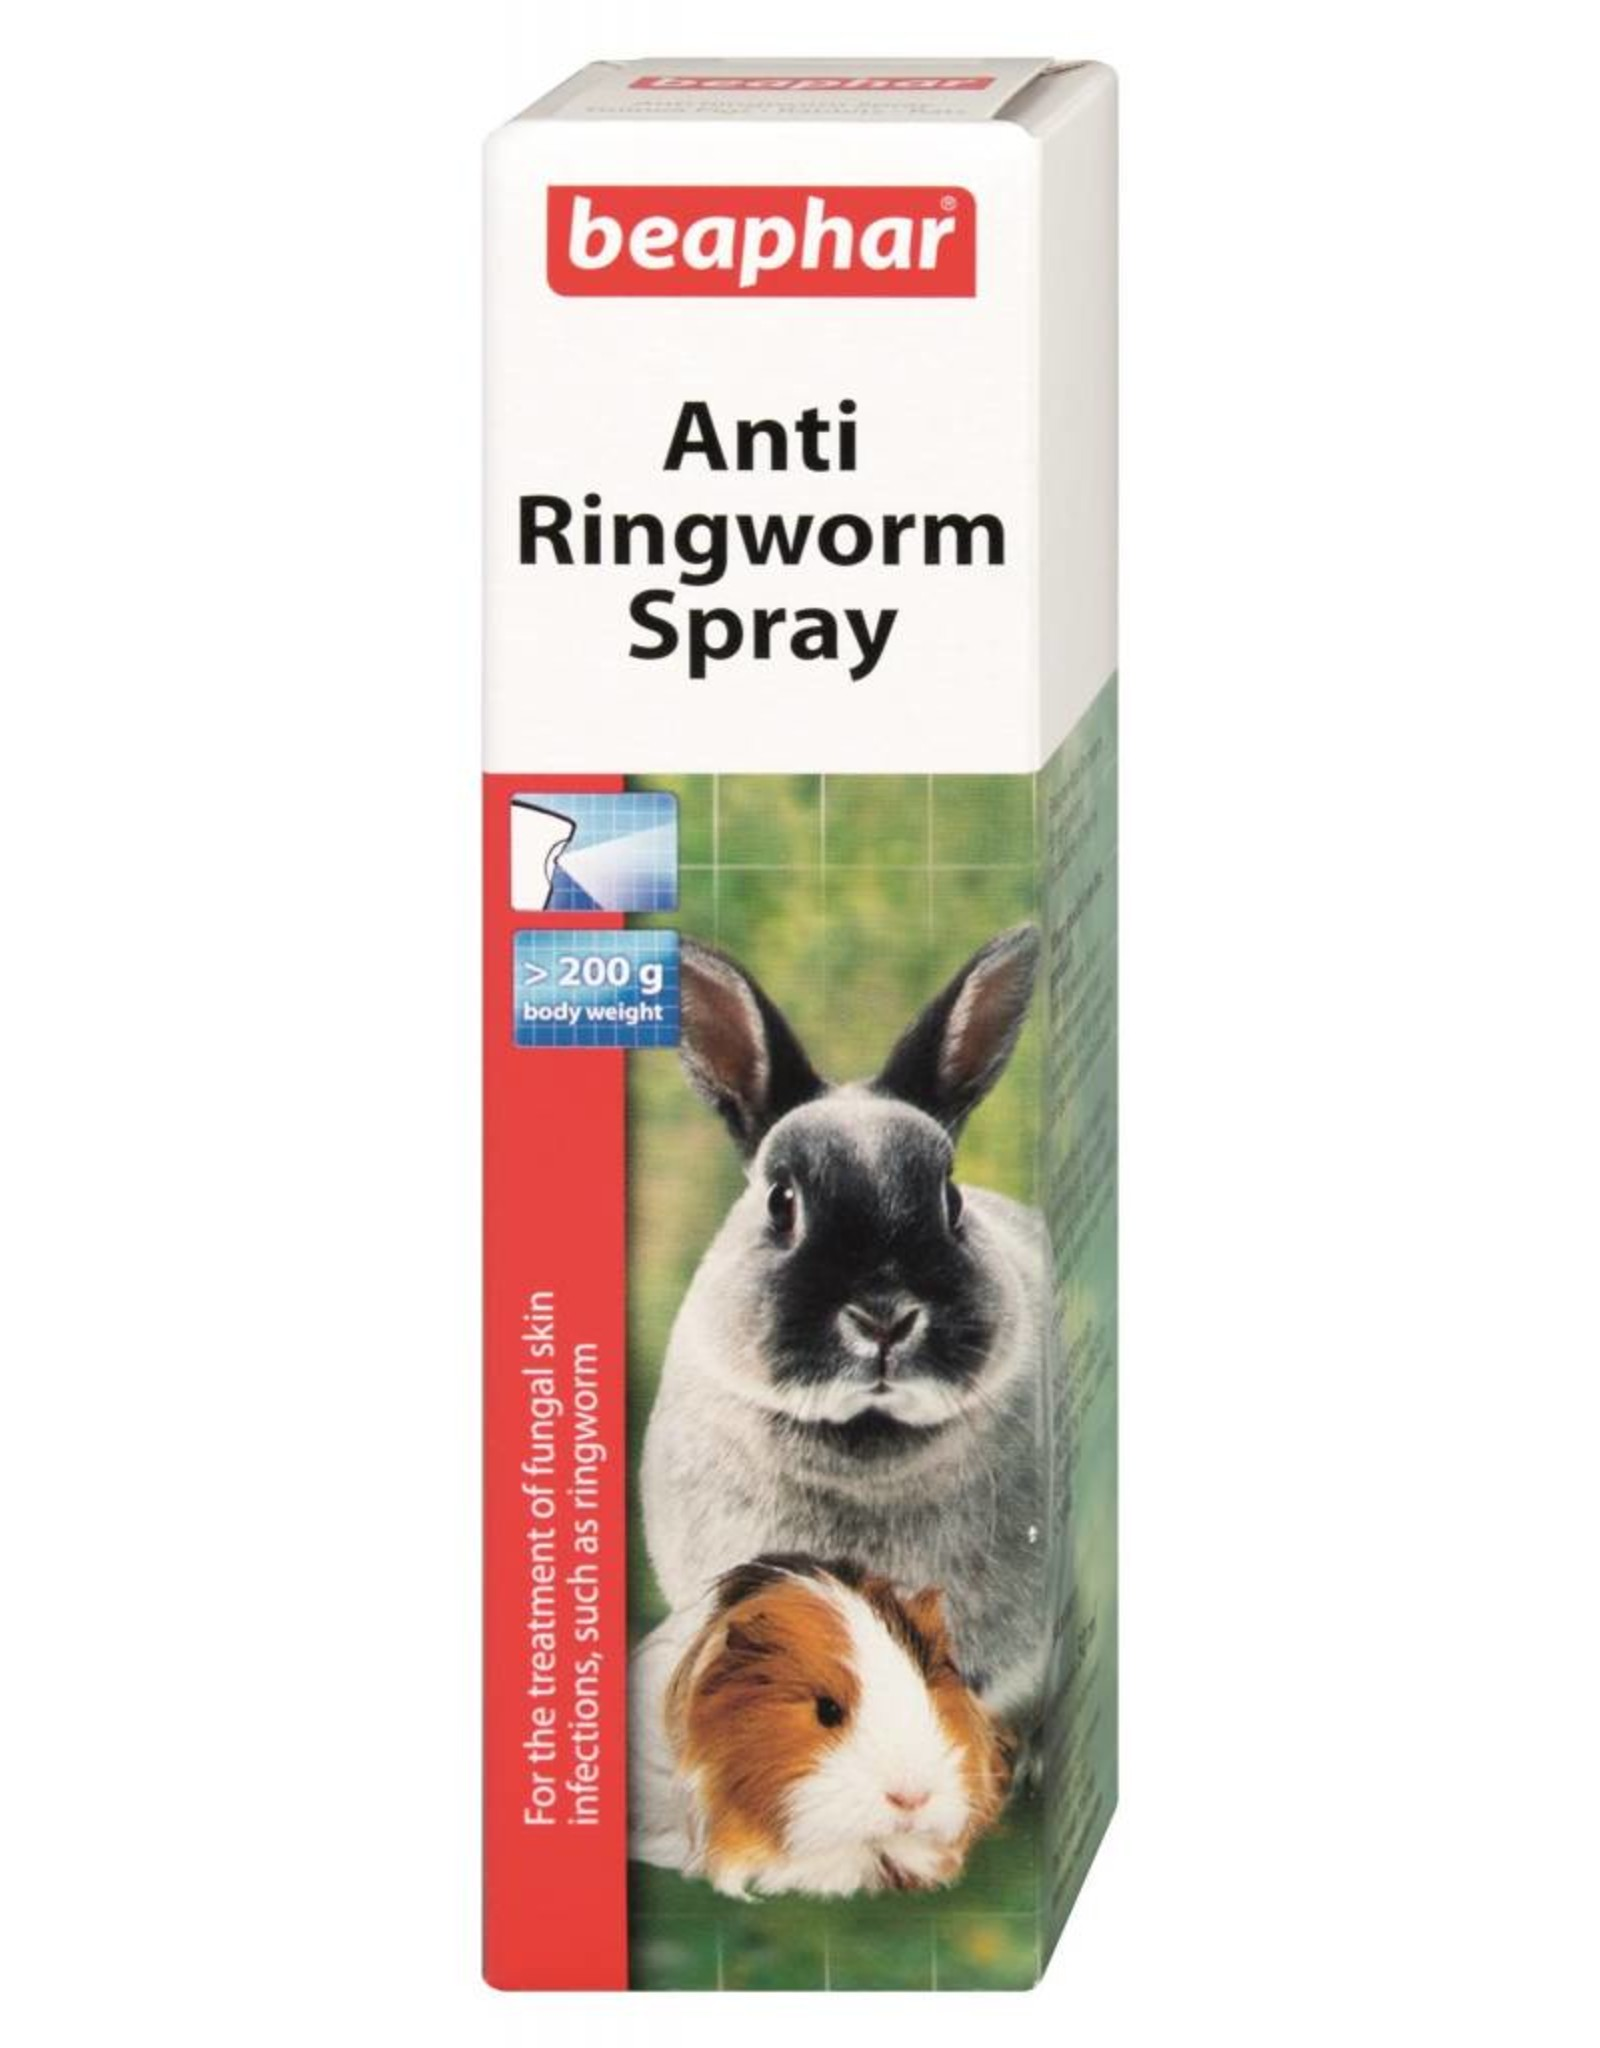 Beaphar Anti Ringworm Spray for Small Animals, 50ml